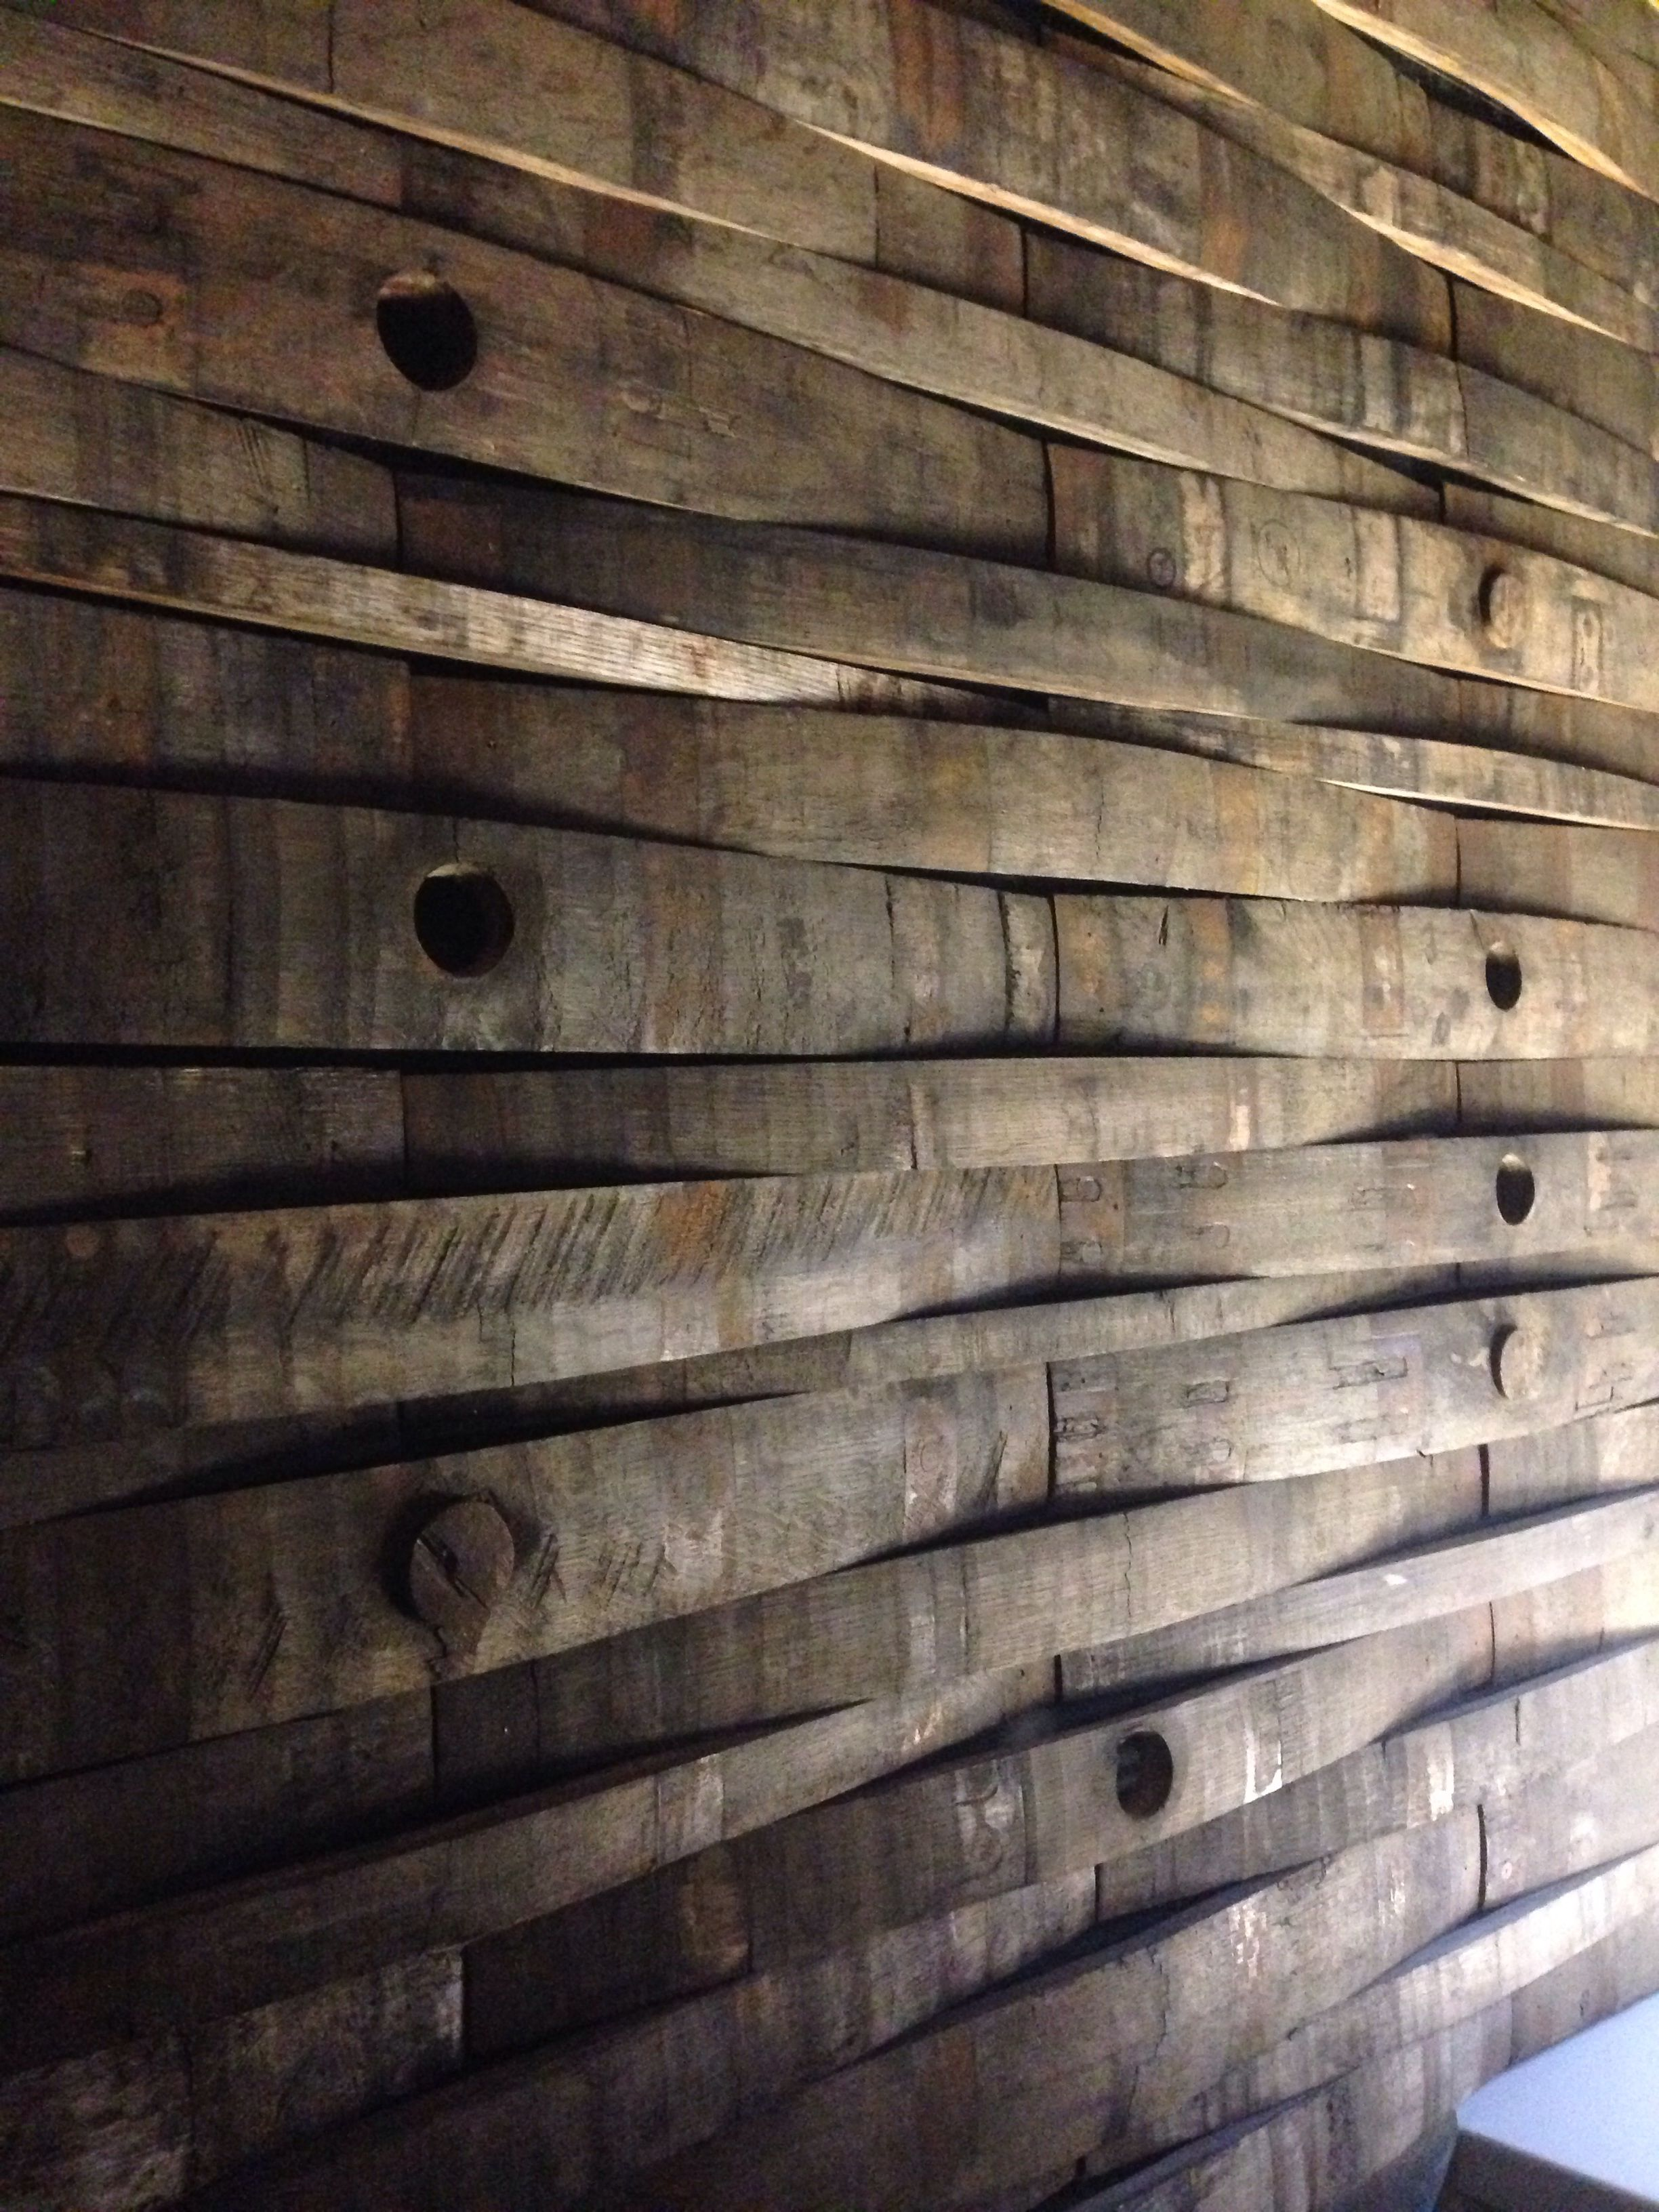 Statement Wall Made Of Whisky Barrels Staves Wood Stave Projects